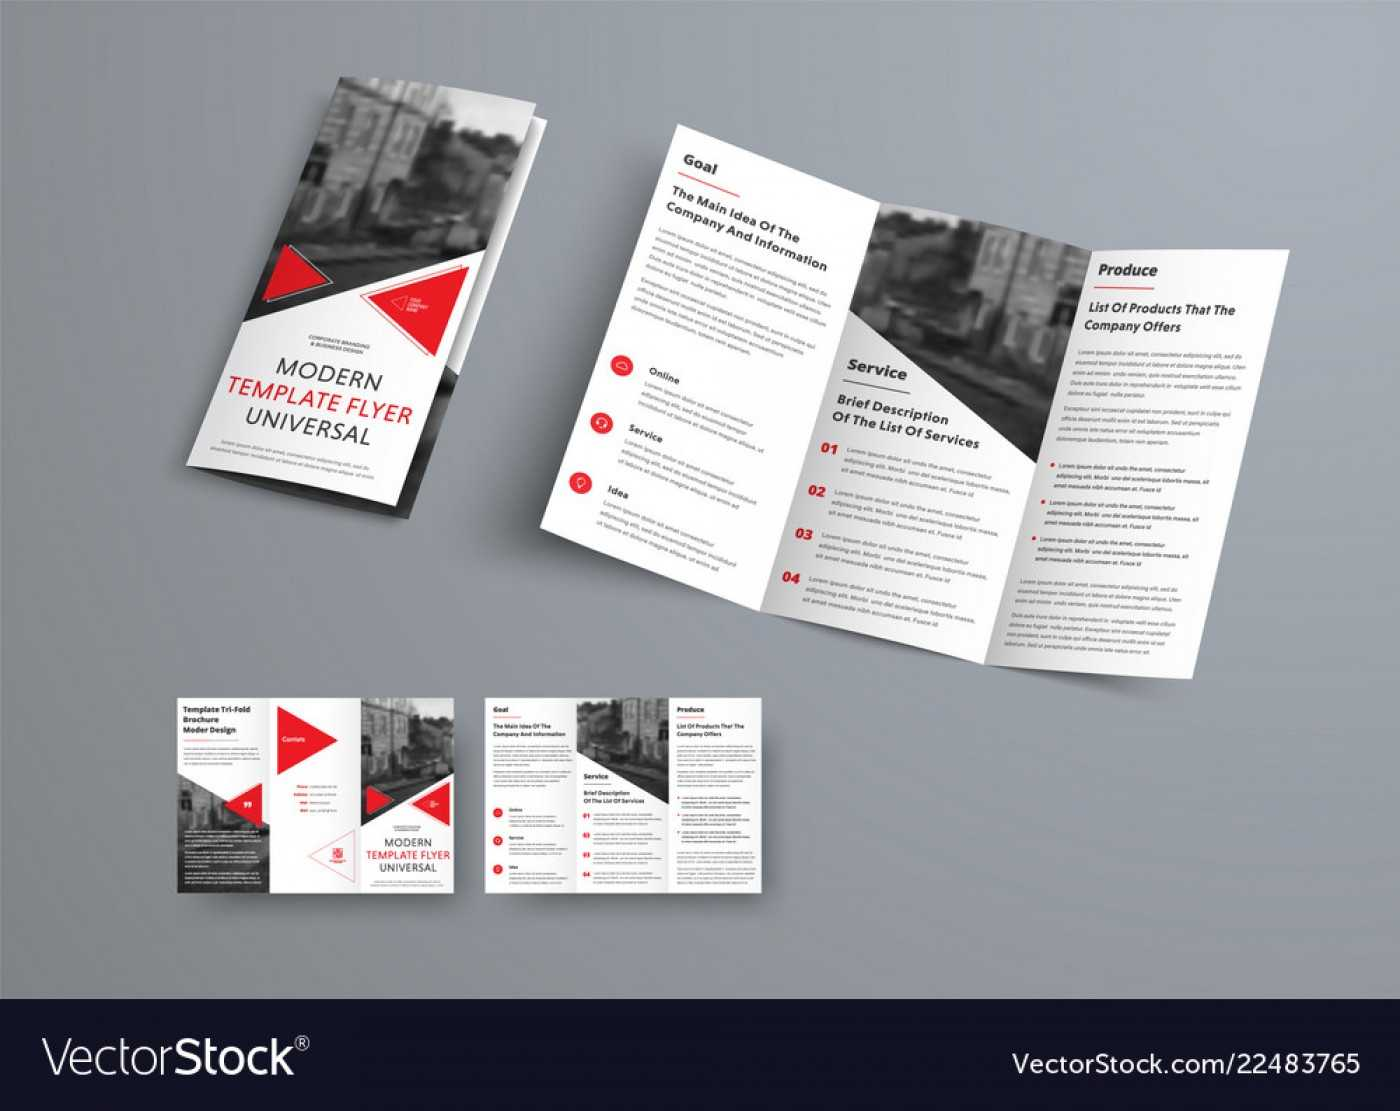 025 Plain Brochure Template Gse Bookbinder Co Throughout Pertaining To Three Fold Card Template